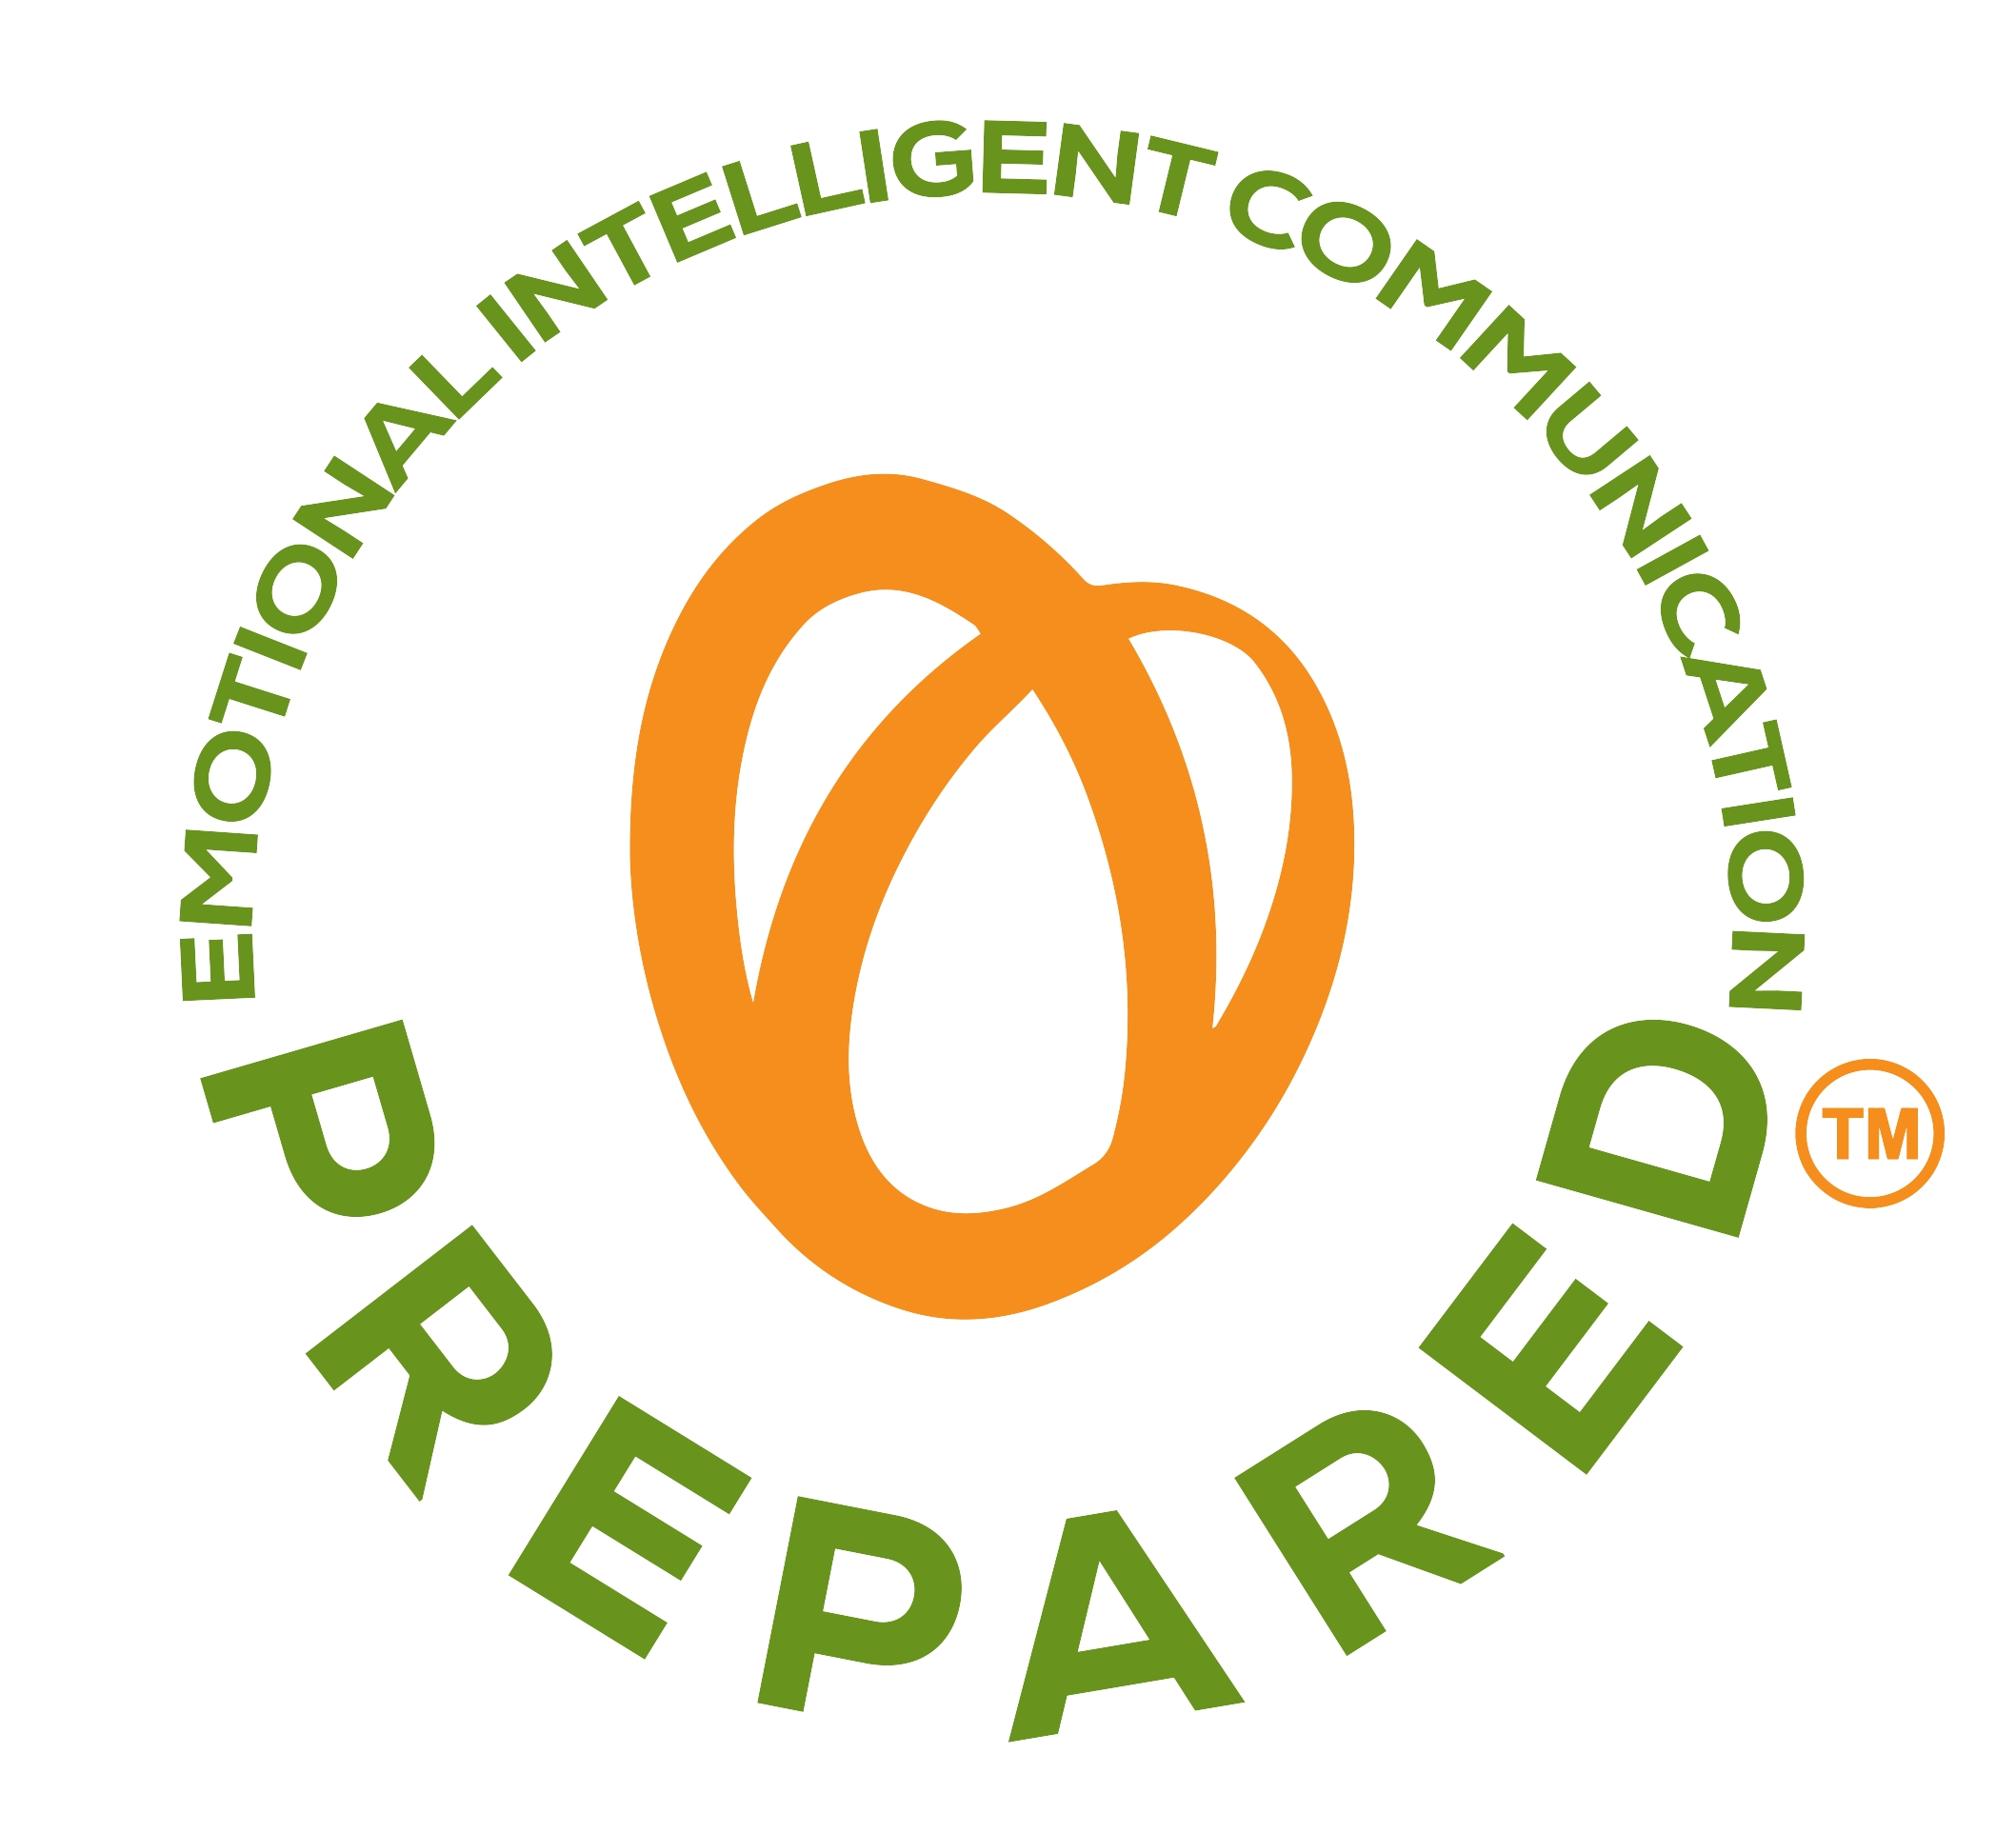 PREPARED EI Communication